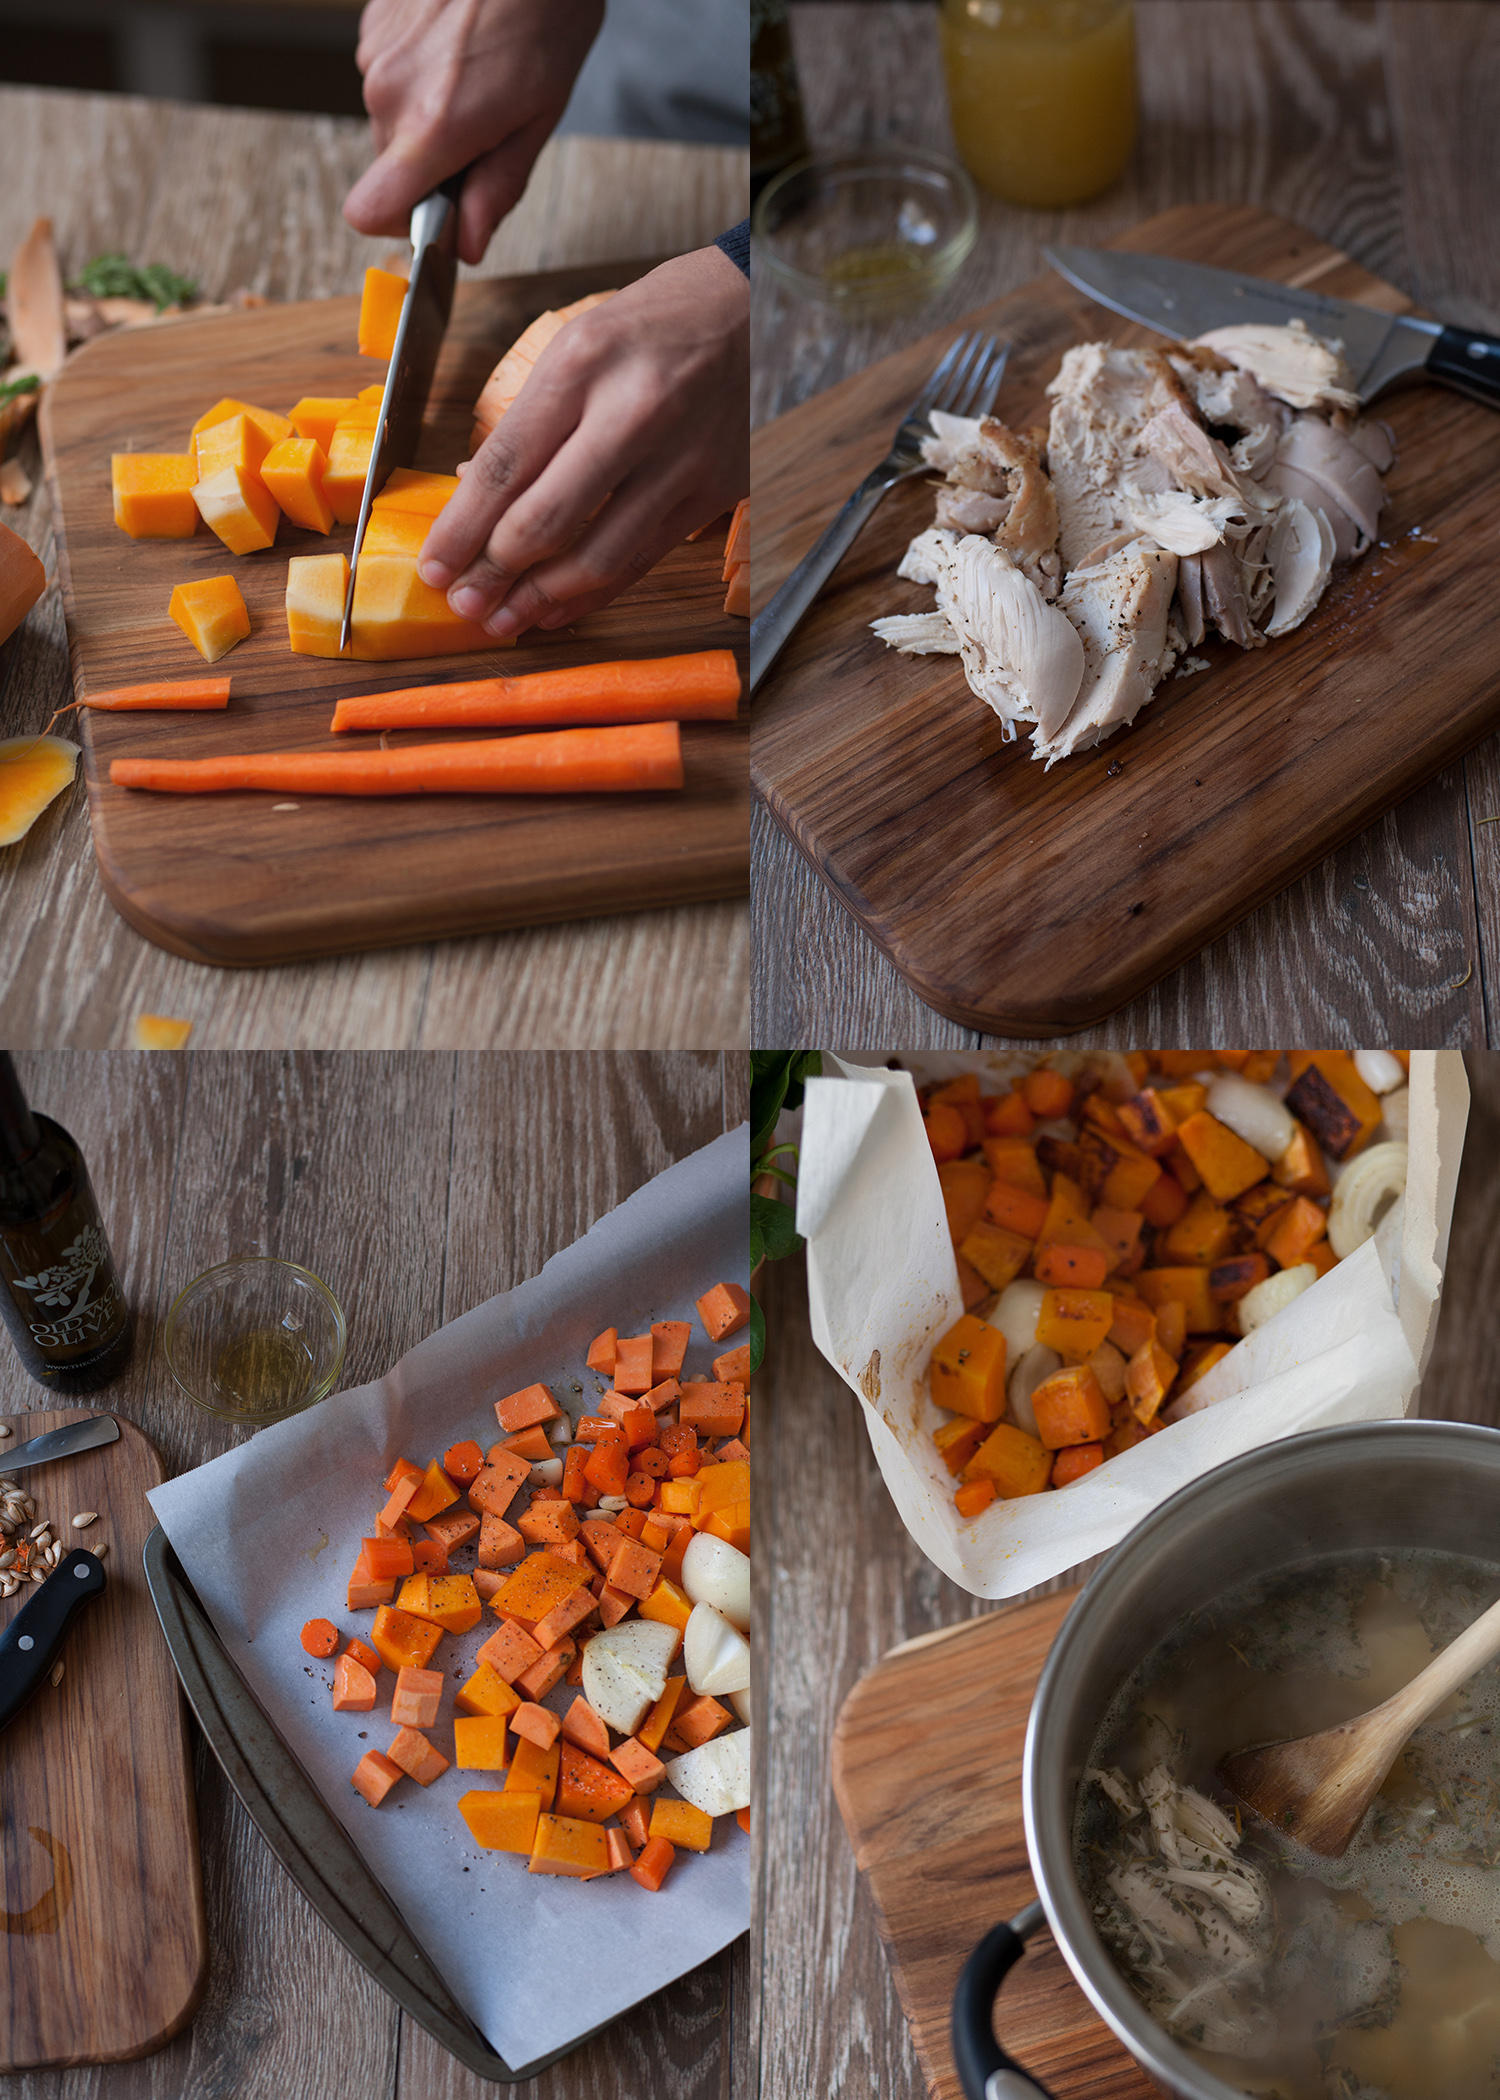 Food styling and photography, roasted vegetables